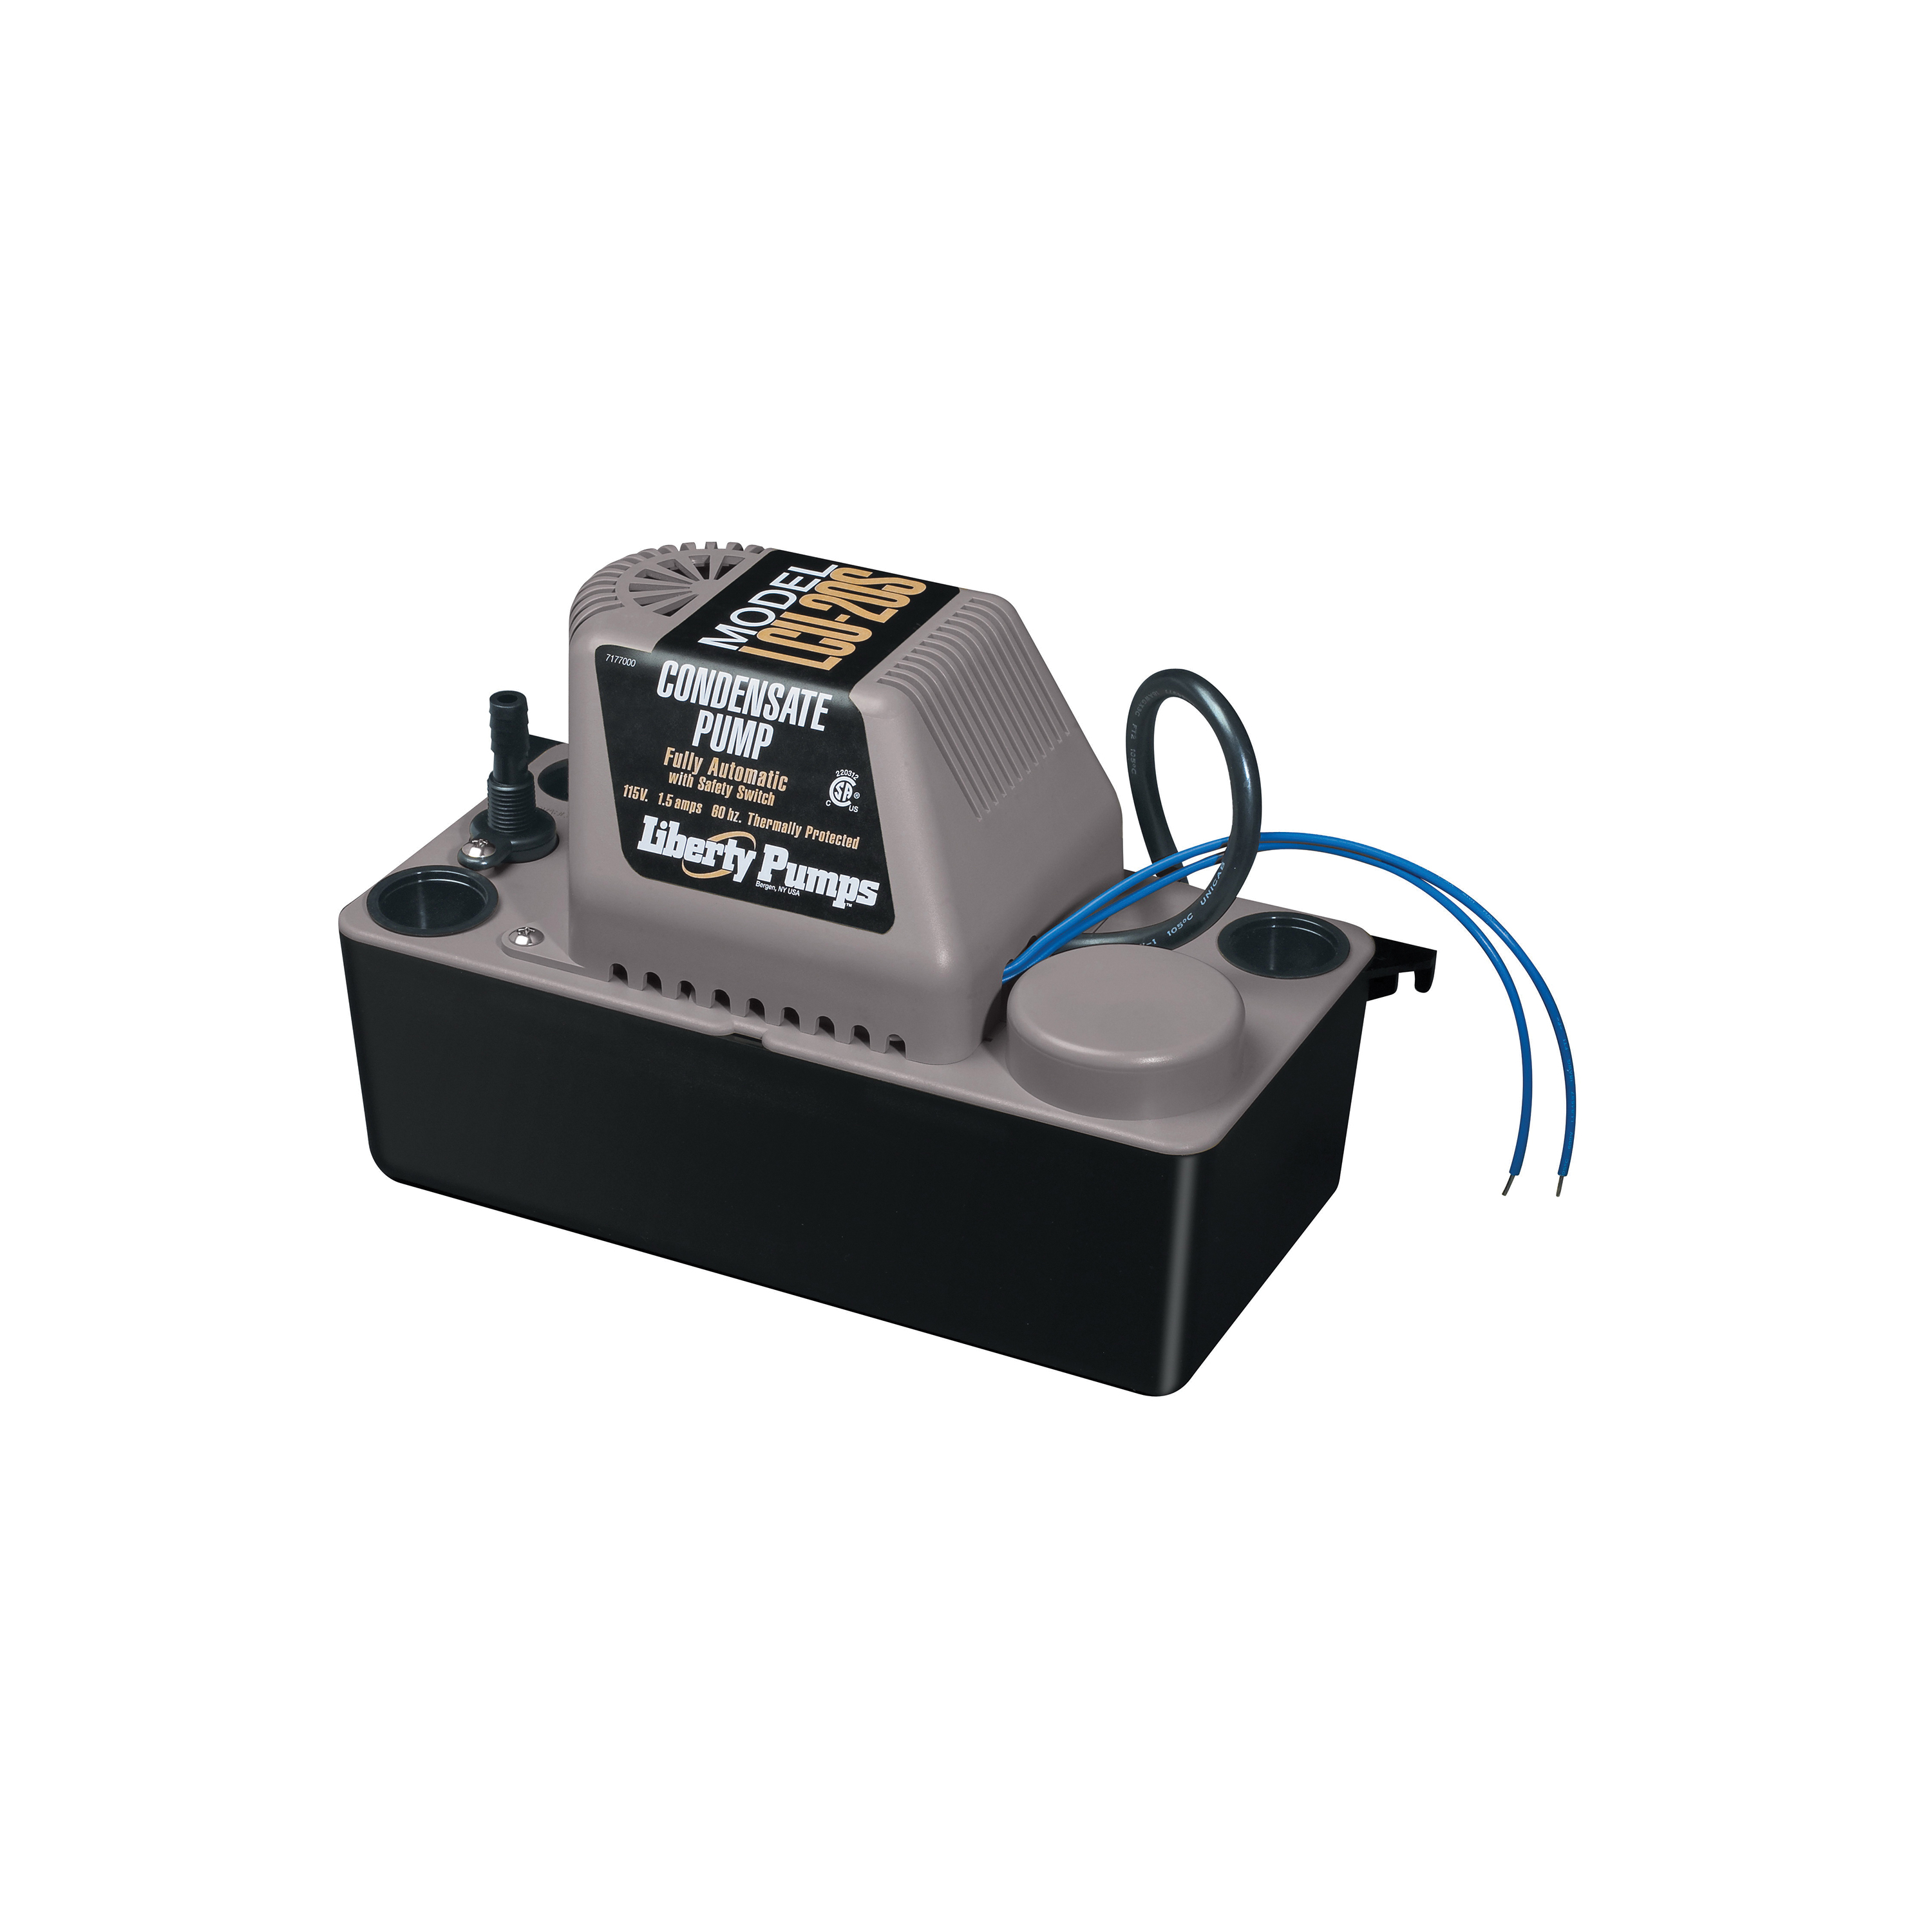 Liberty Pumps® LCU-20ST Condensate pump With Safety Switch, 110 gph Flow Rate, 3/8 in OD Outlet, 20 ft Shutoff Head, 1/30 hp Power Rating